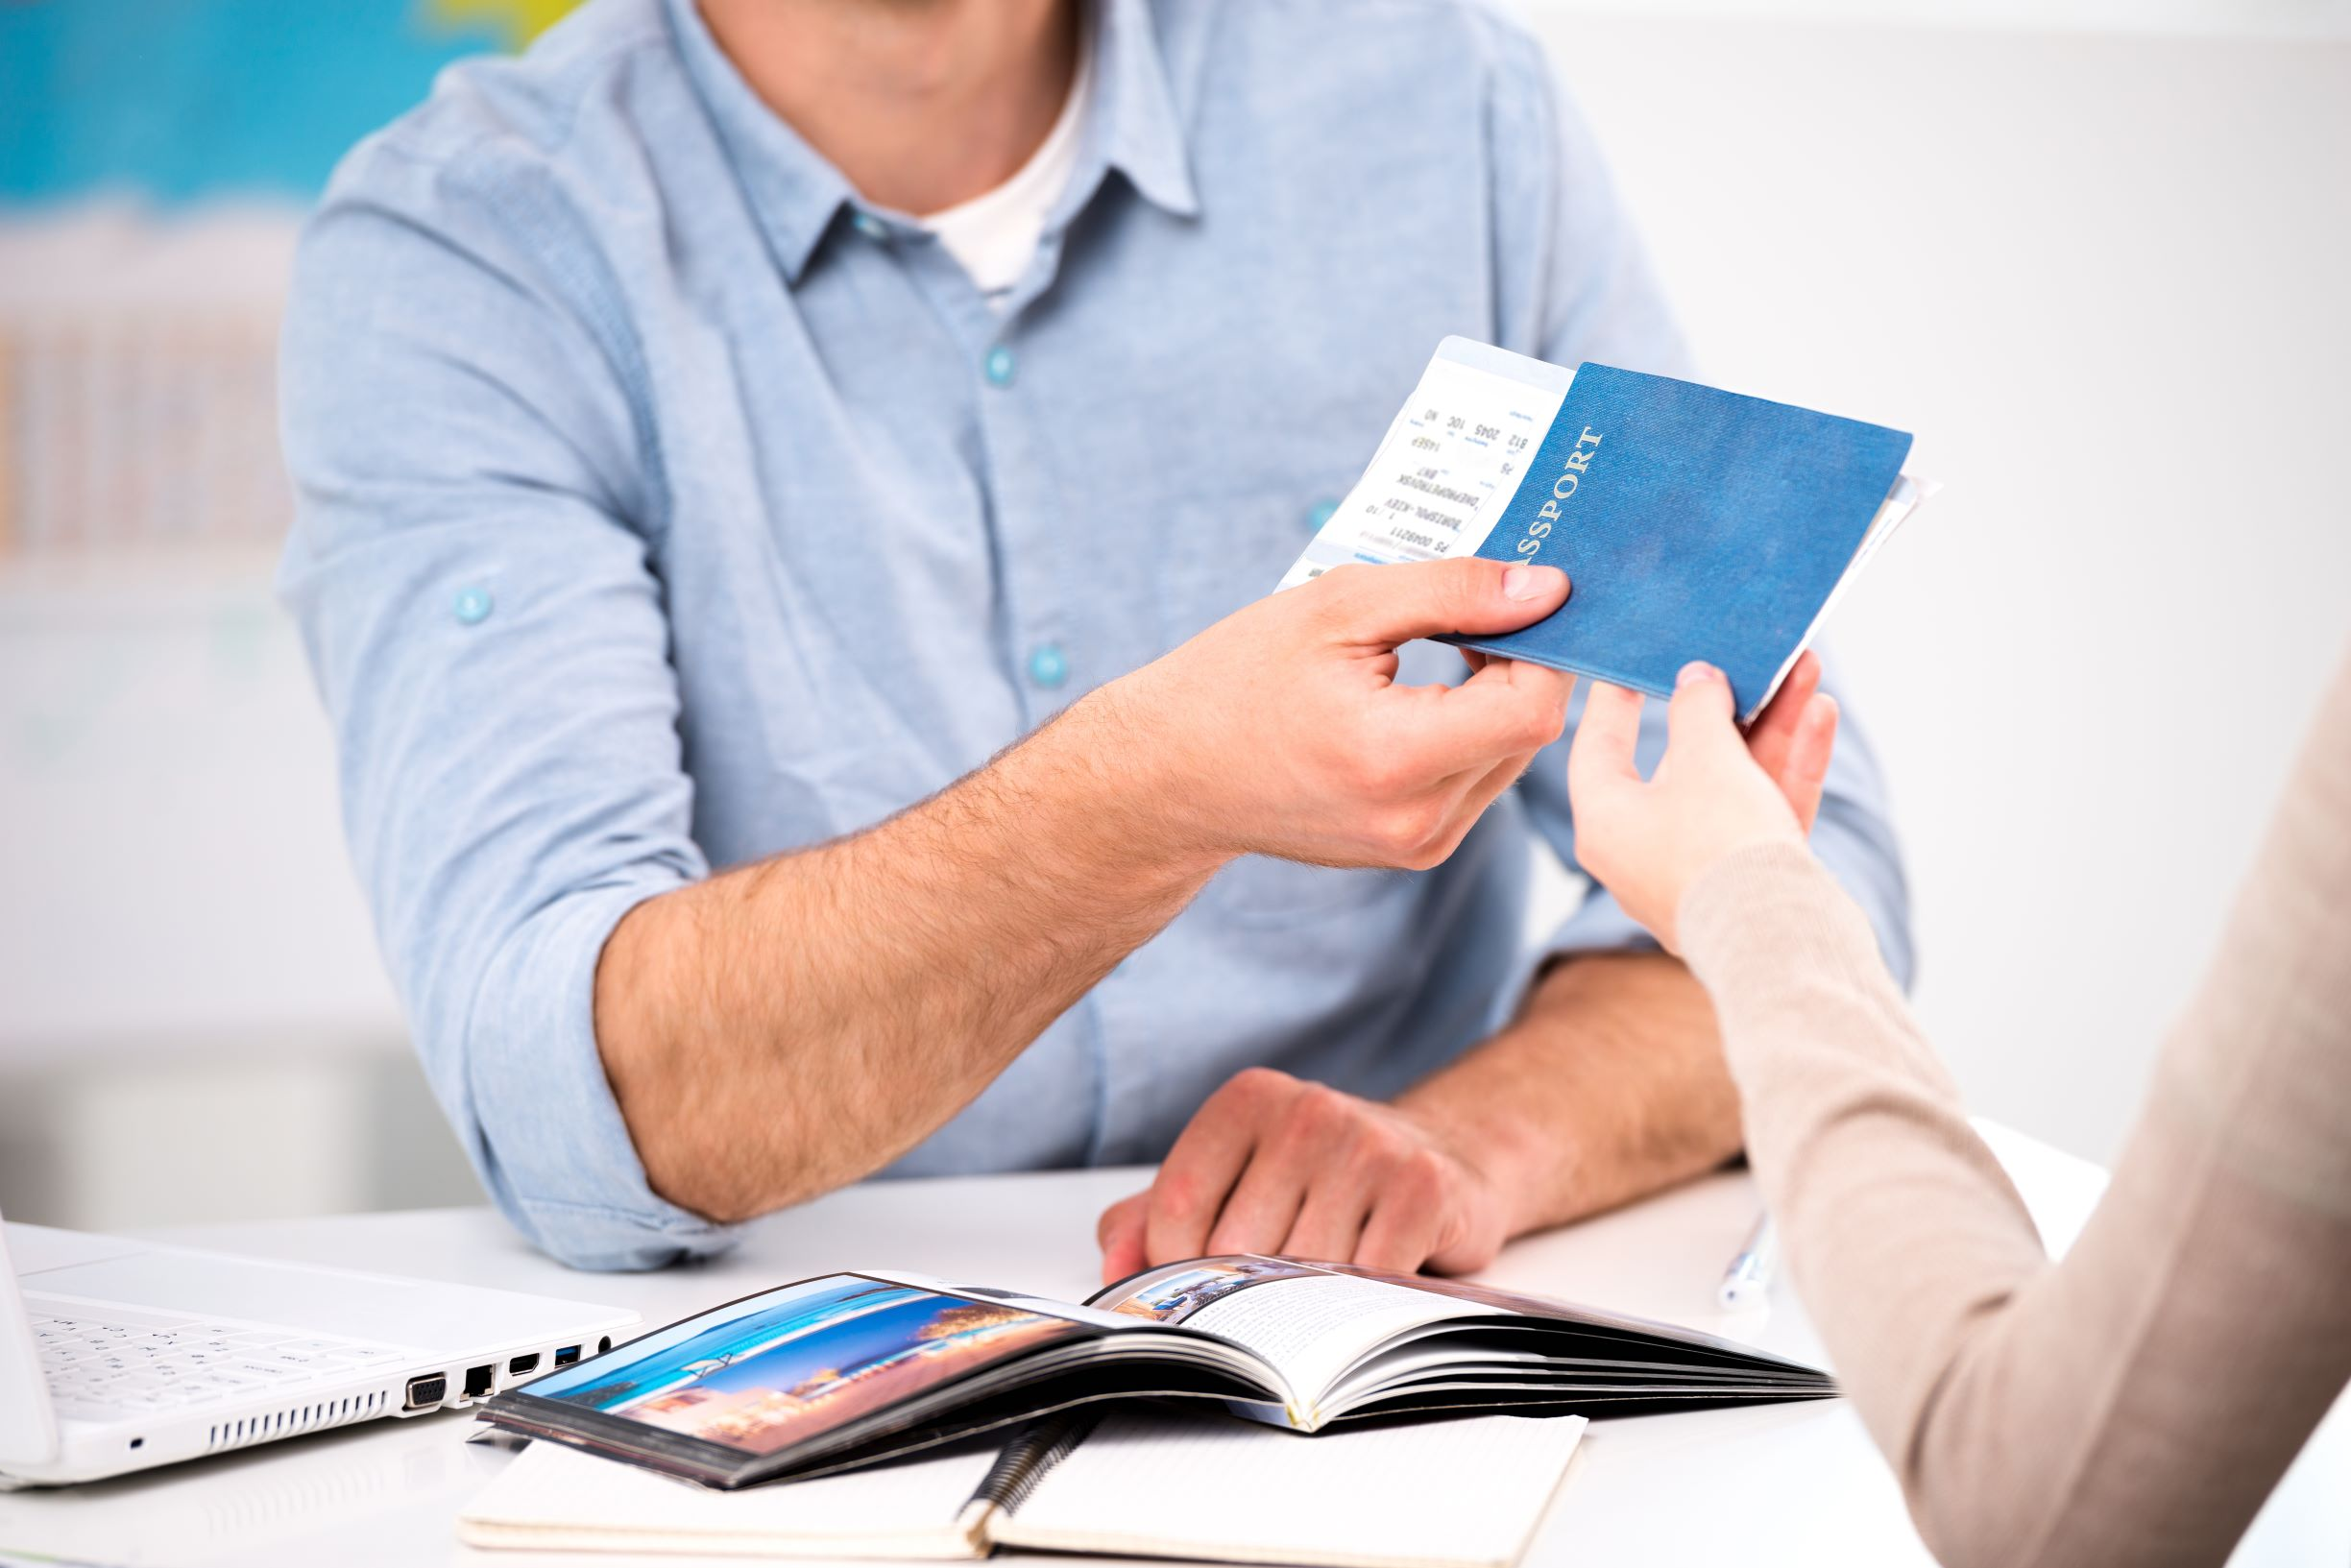 Migration agent helps customer with successful visa application